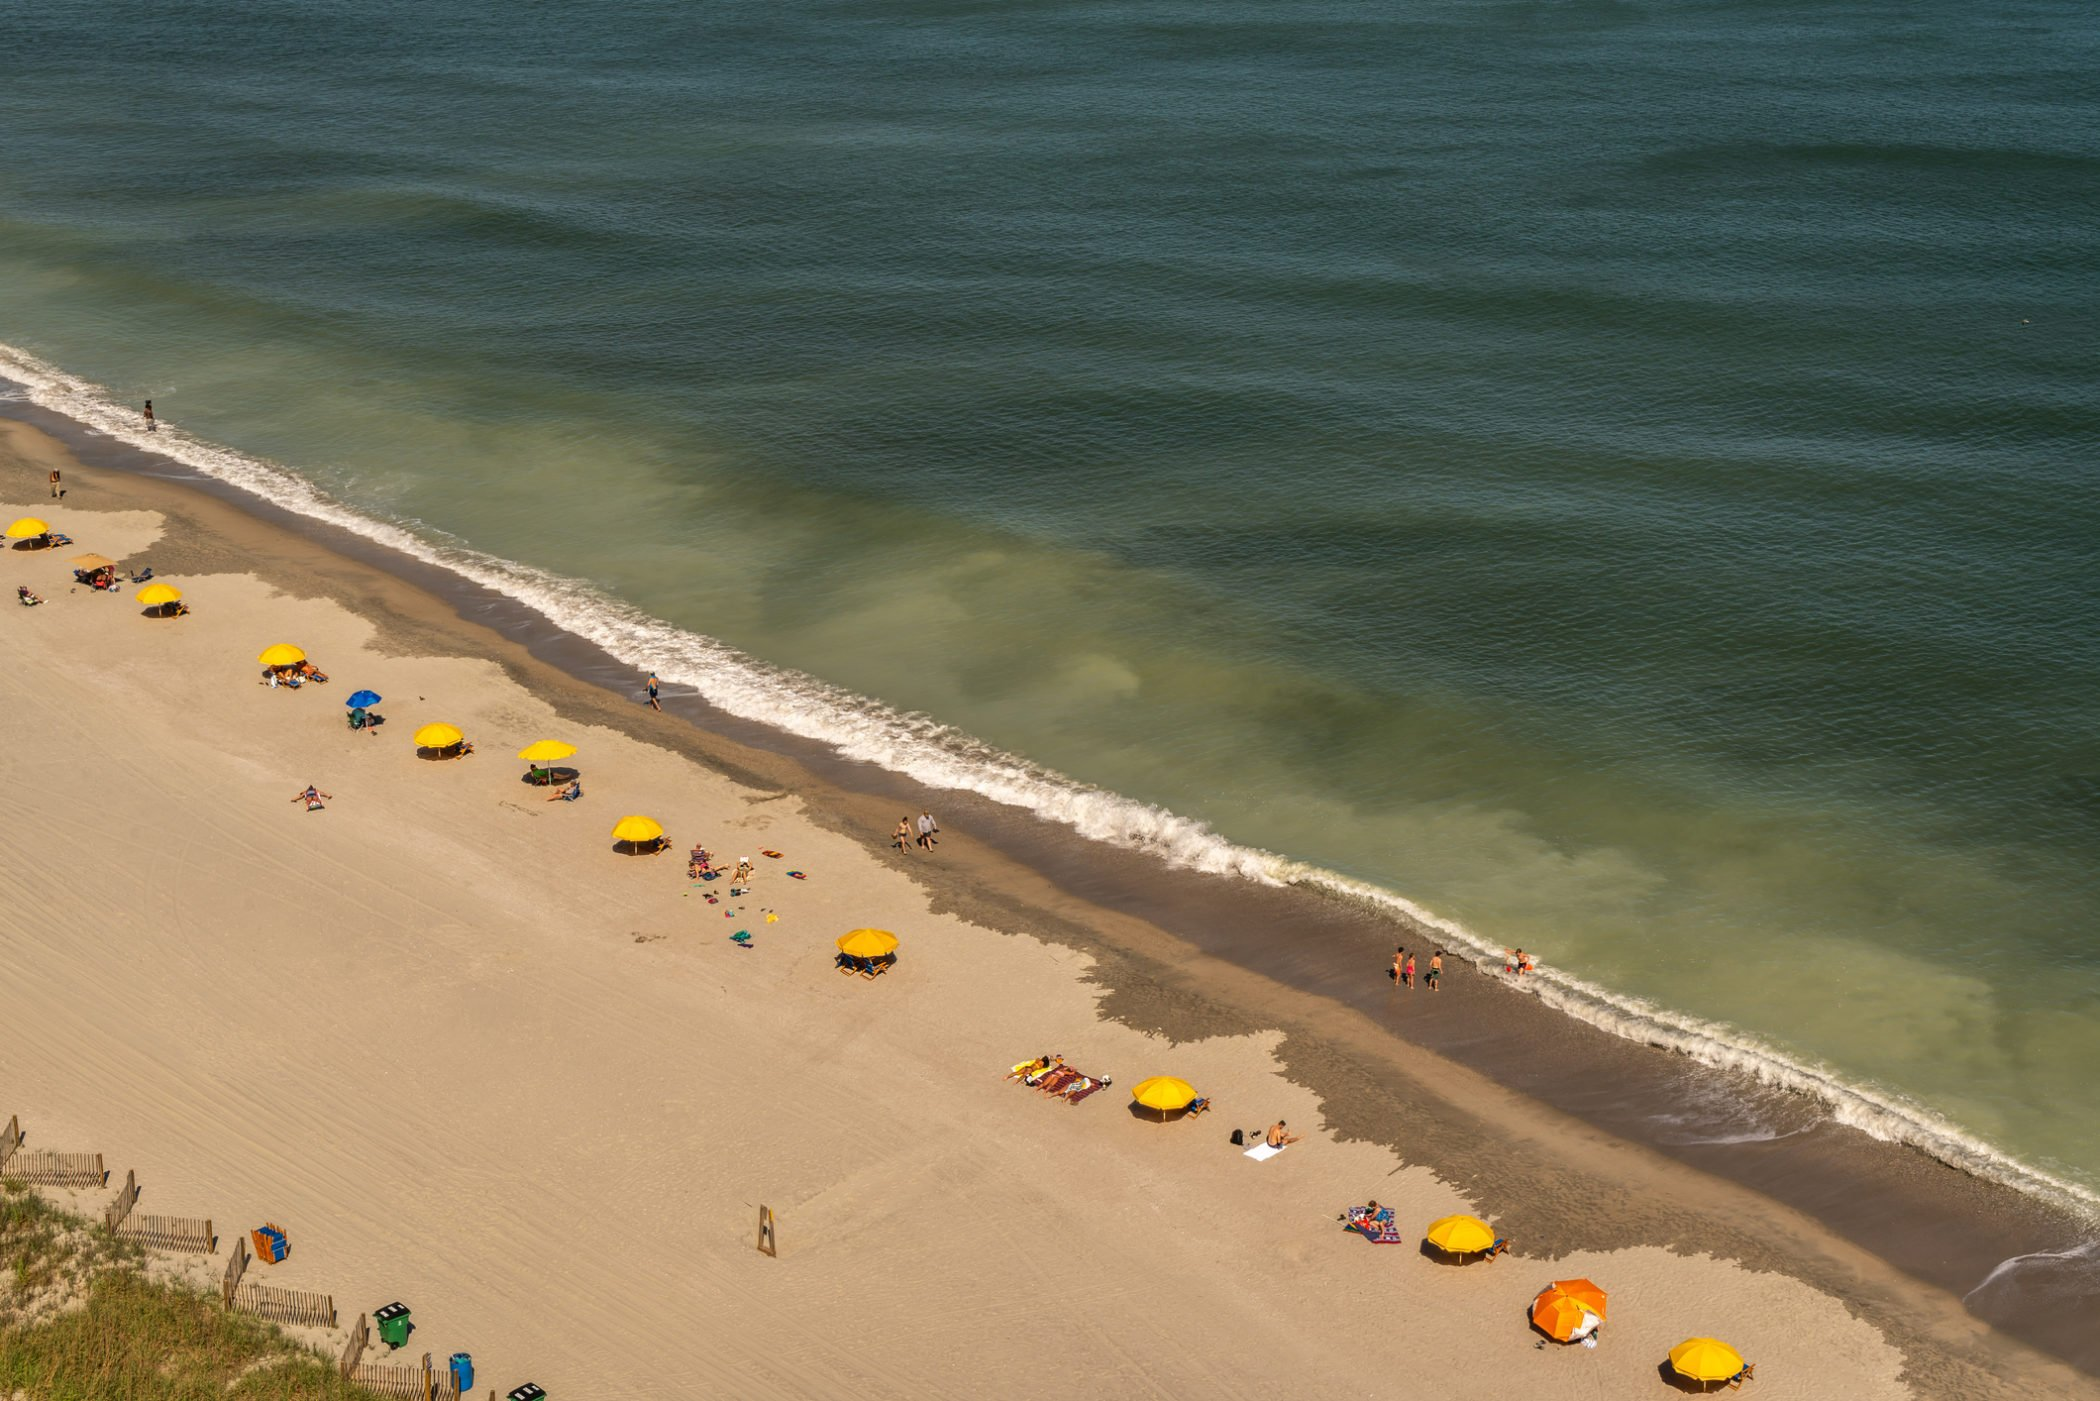 Over half of NY's beaches 'potentially unsafe' due to fecal matter